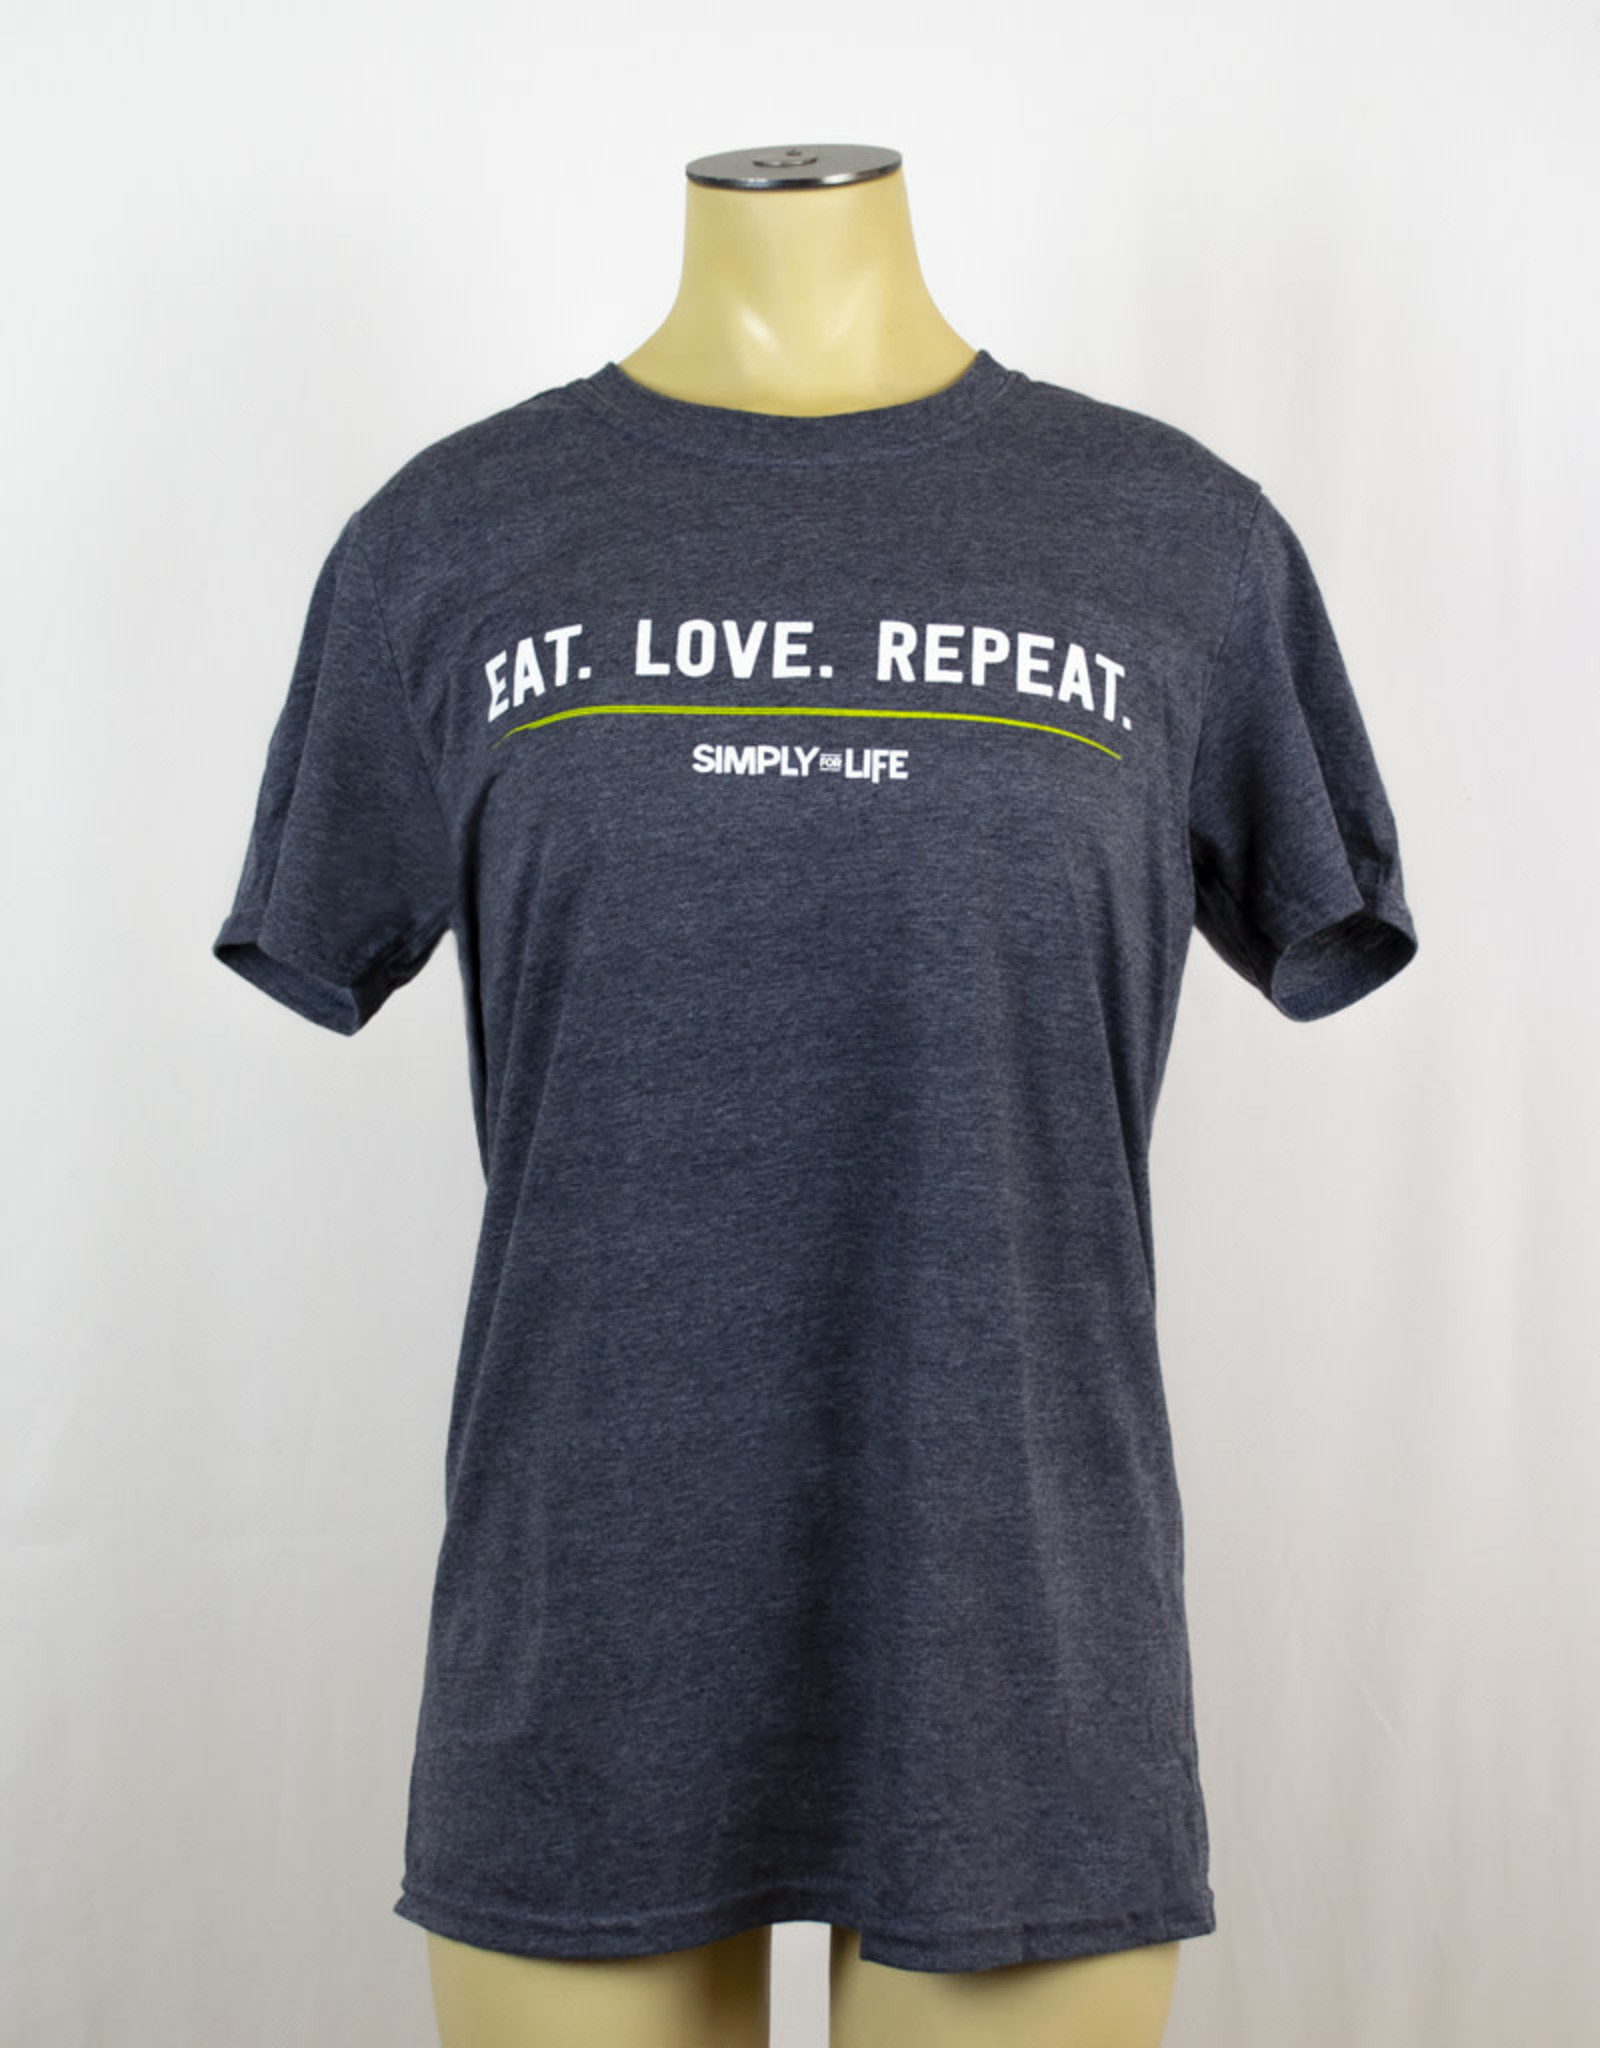 Simply For Life T-Shirt Crewneck - Eat Love Repeat